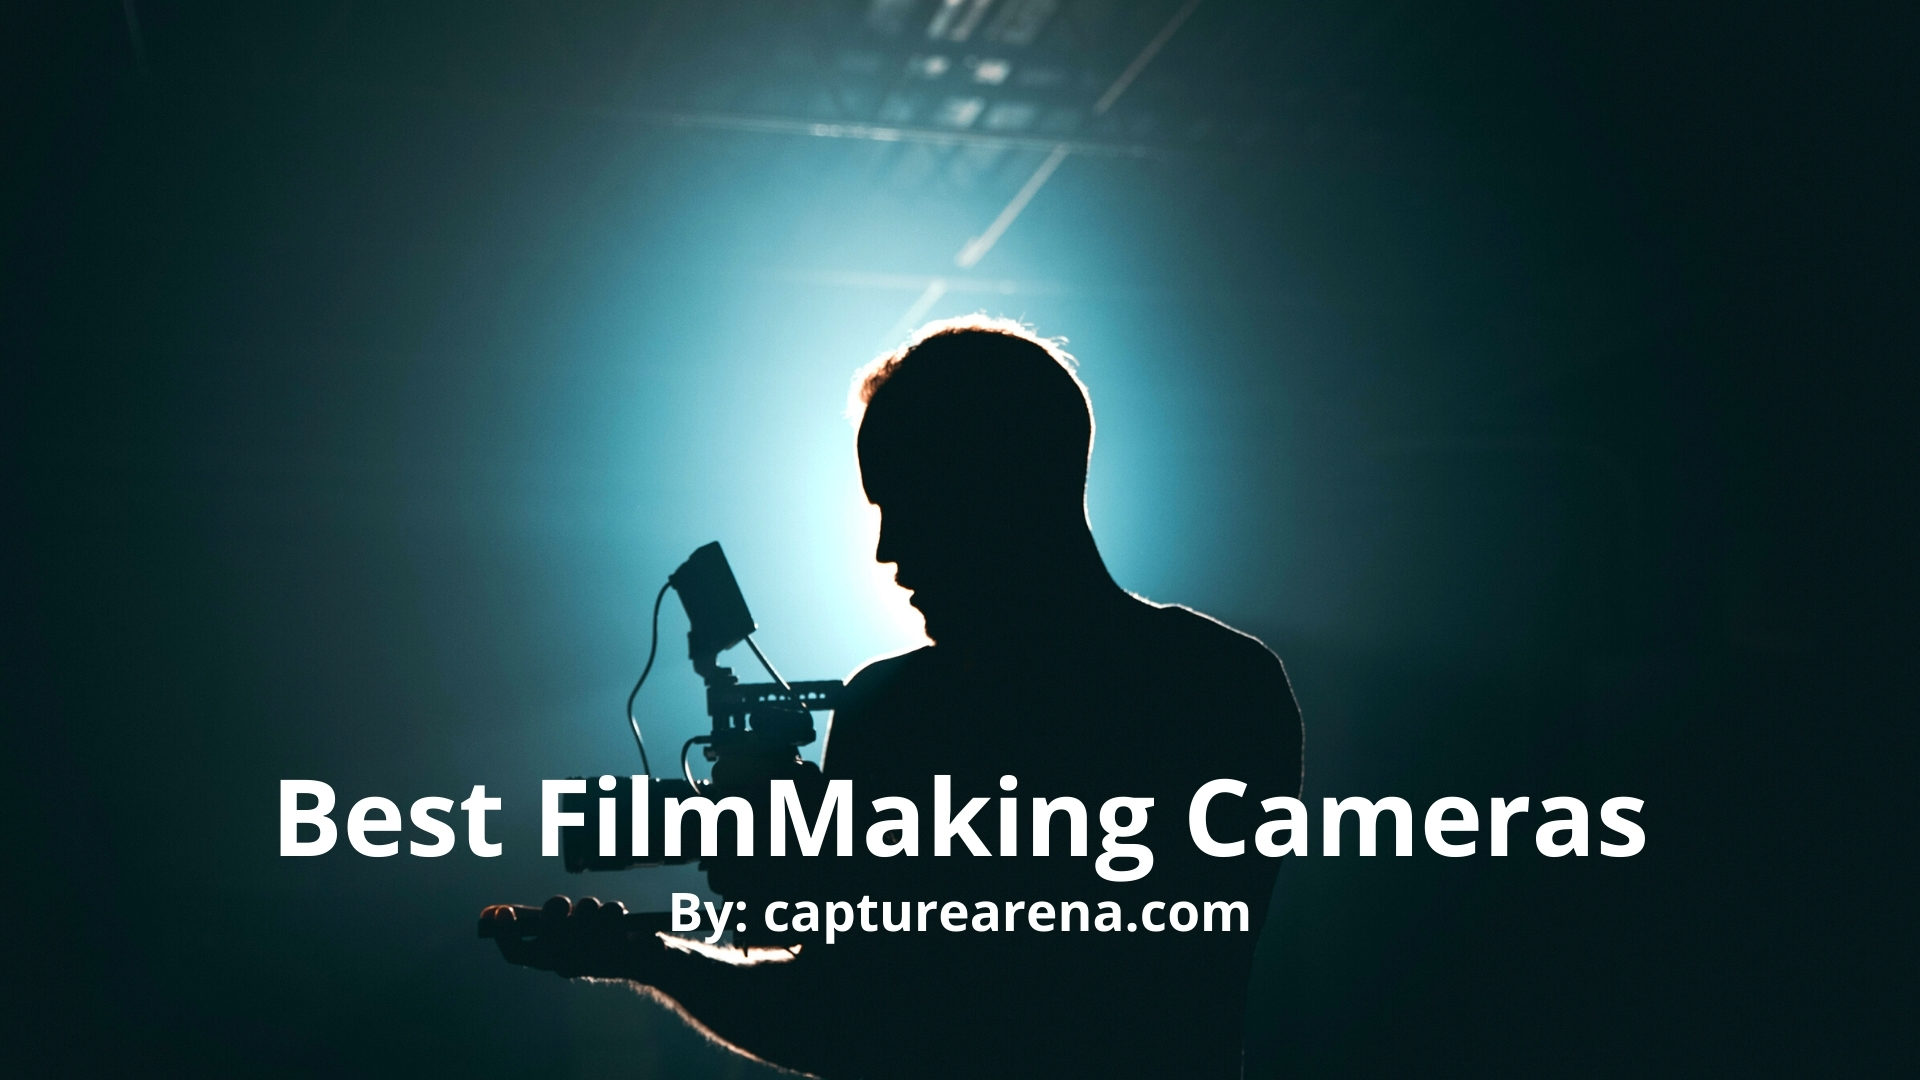 Best FilmMaking Cameras